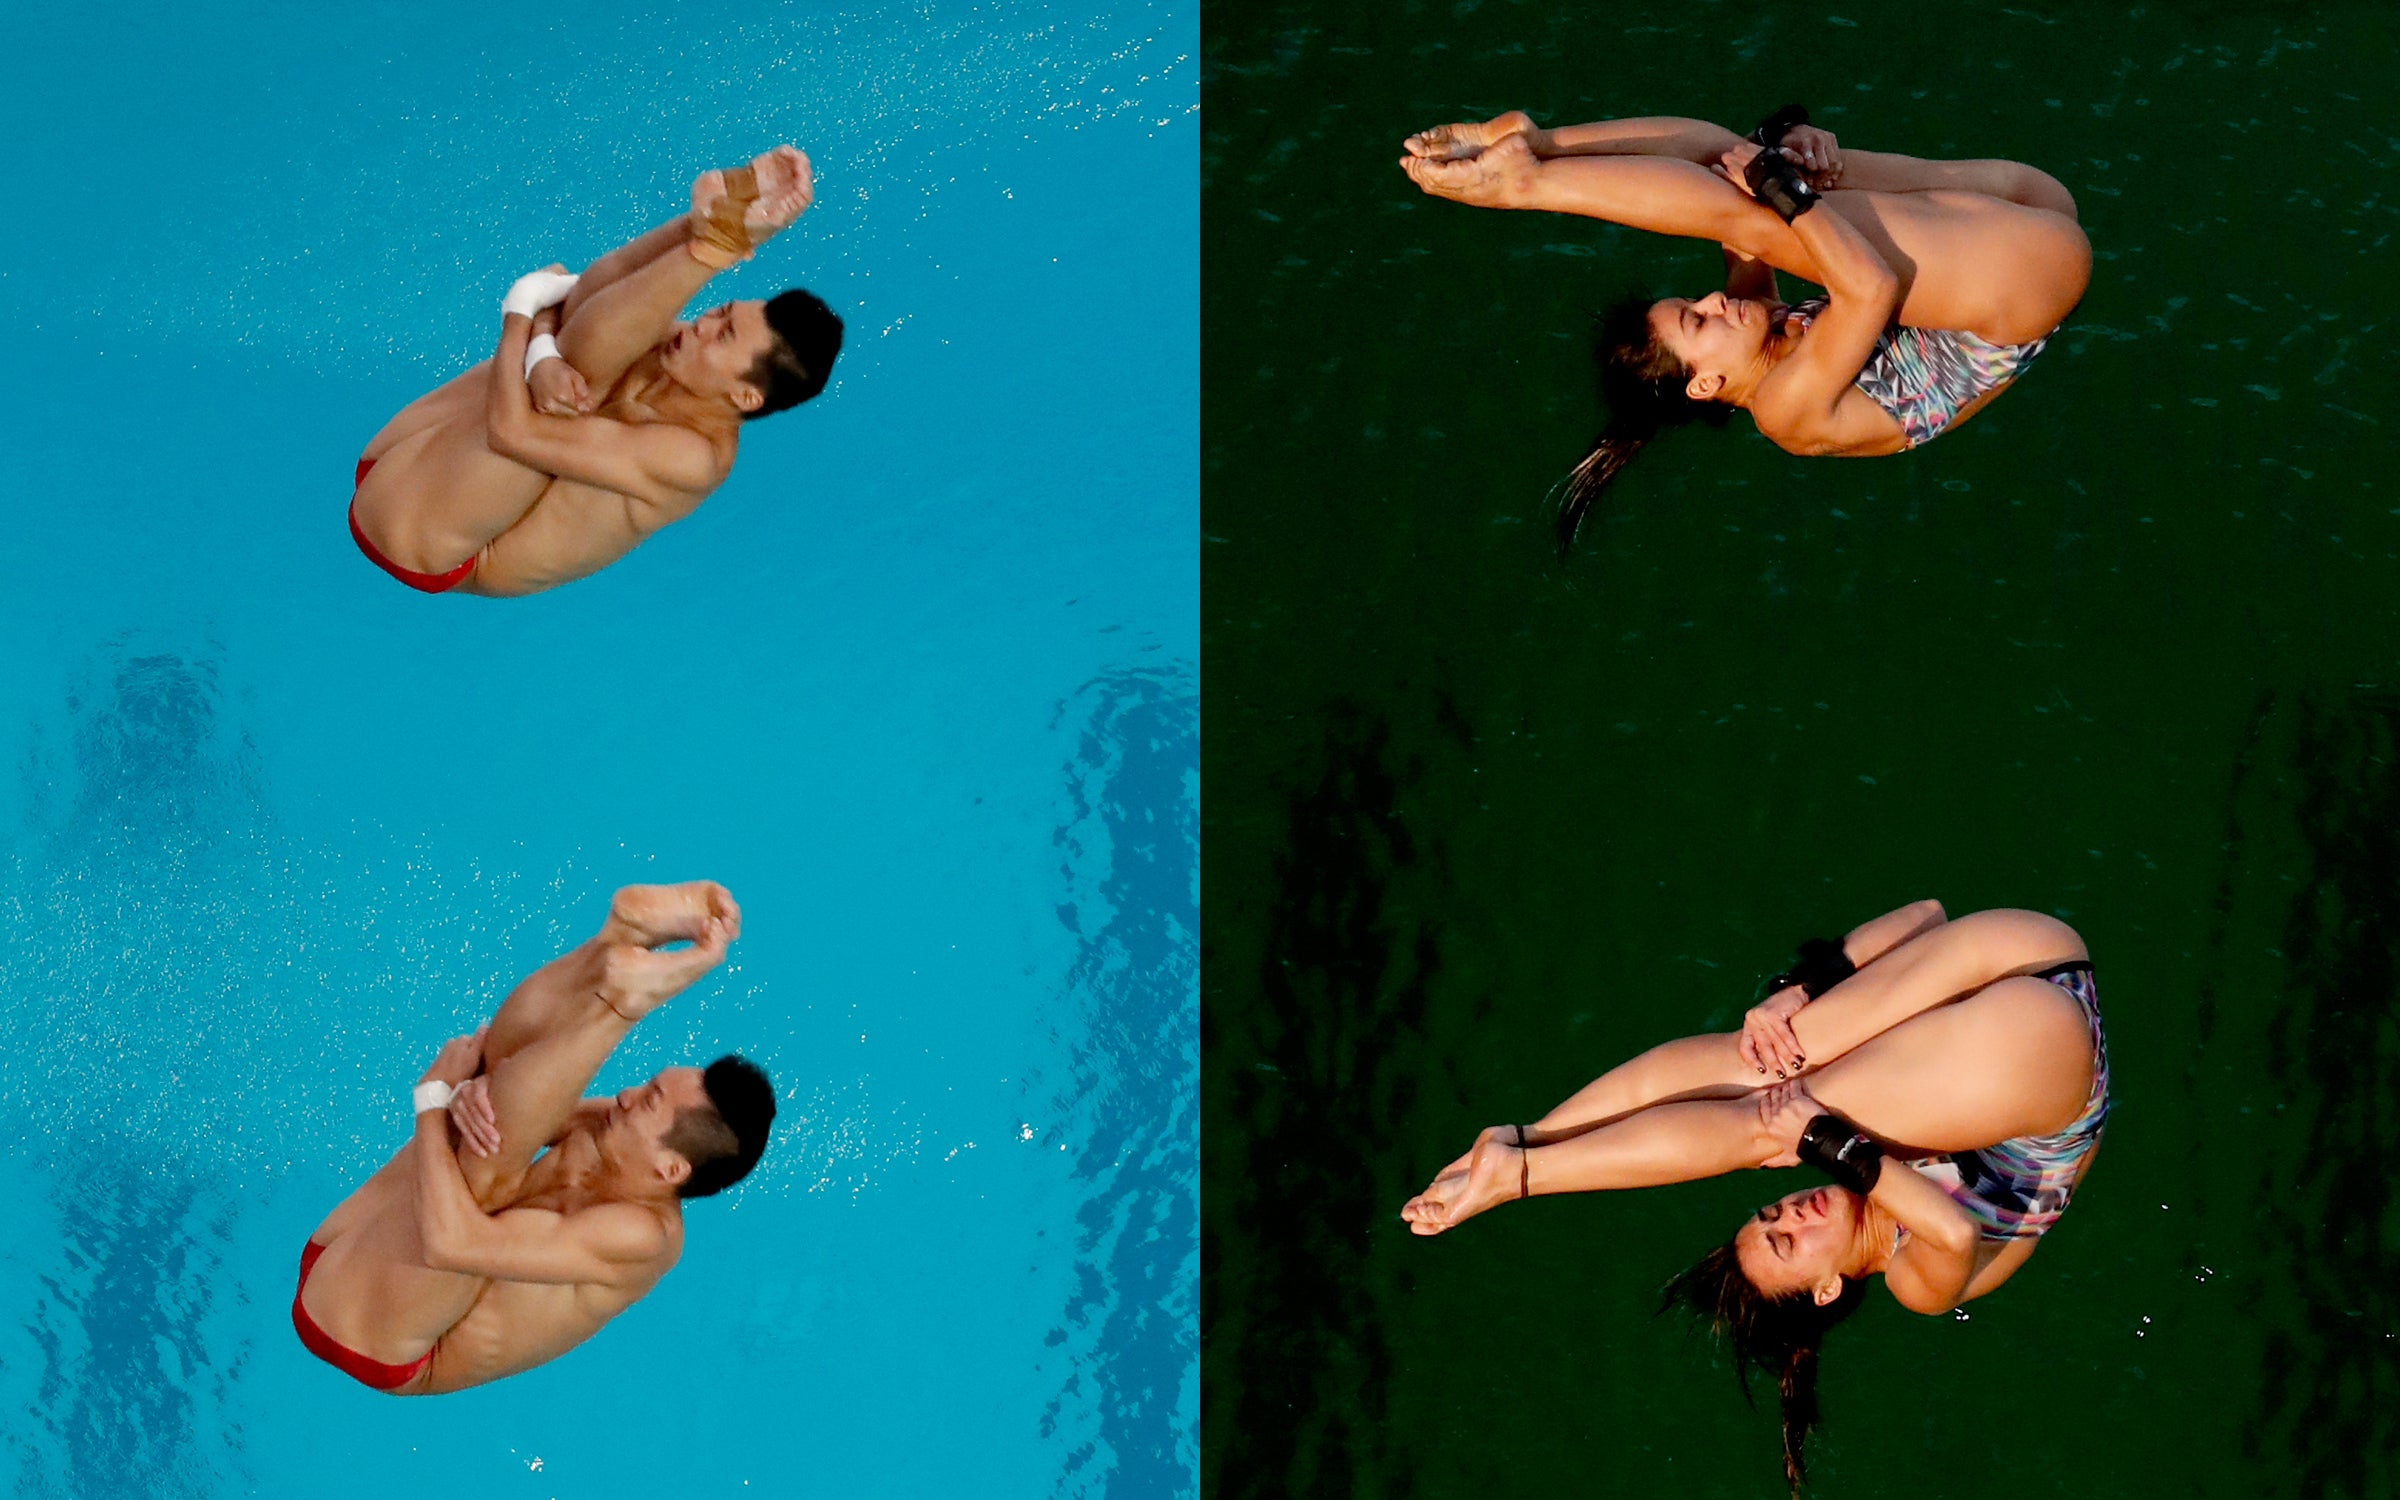 Officials Don't Know Why The Olympic Diving Pool Turned Green (Also: Gross)